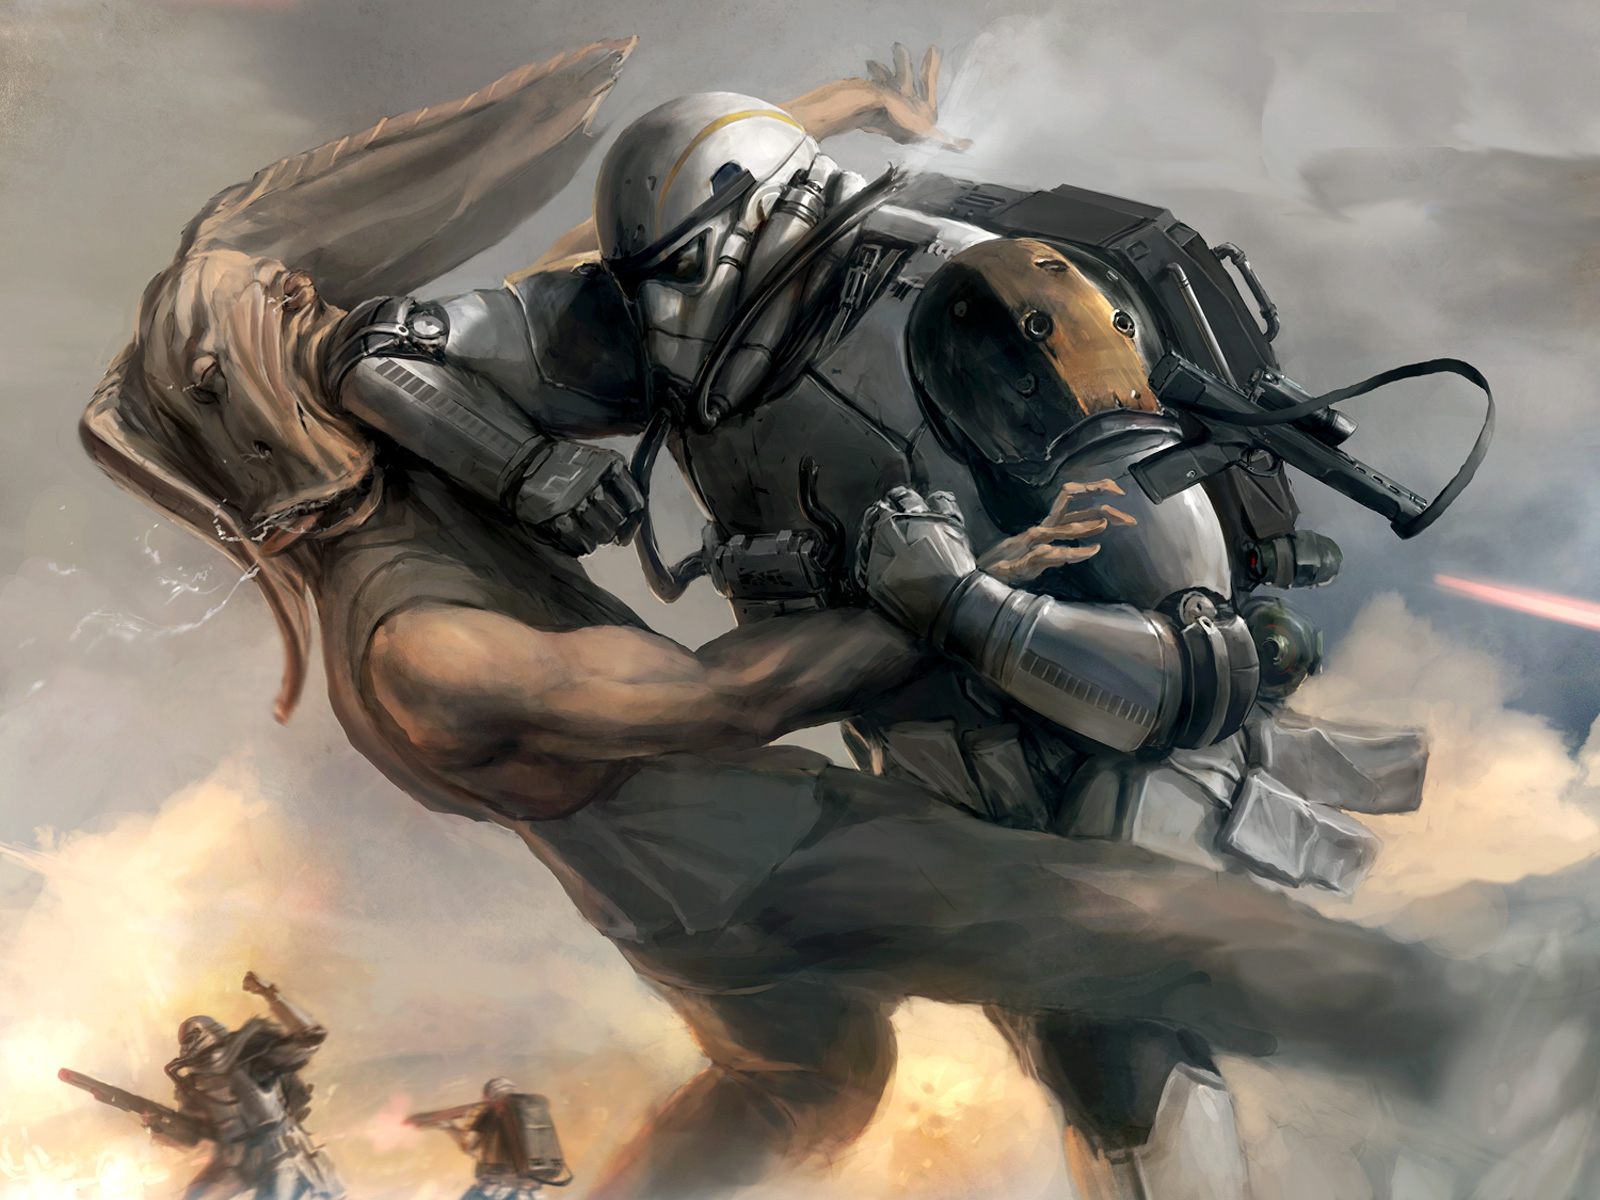 star wars wallpaper,action adventure game,cg artwork,strategy video game,pc game,illustration